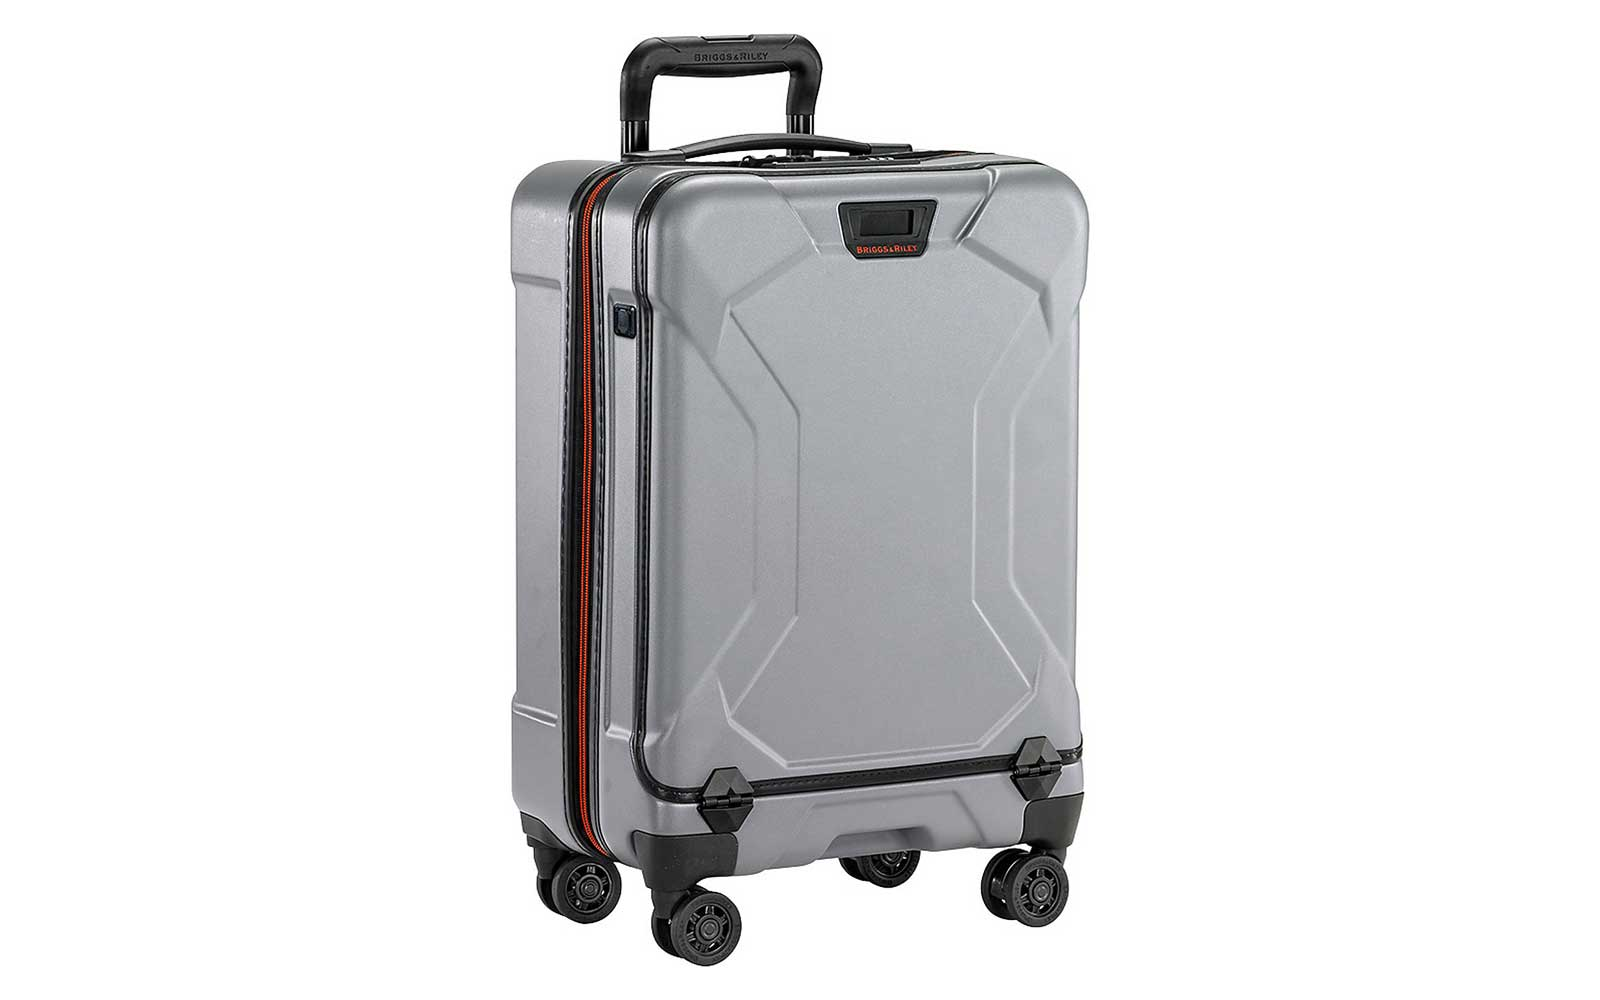 Silver Briggs and Riley Hardside Carry-on Suitcase